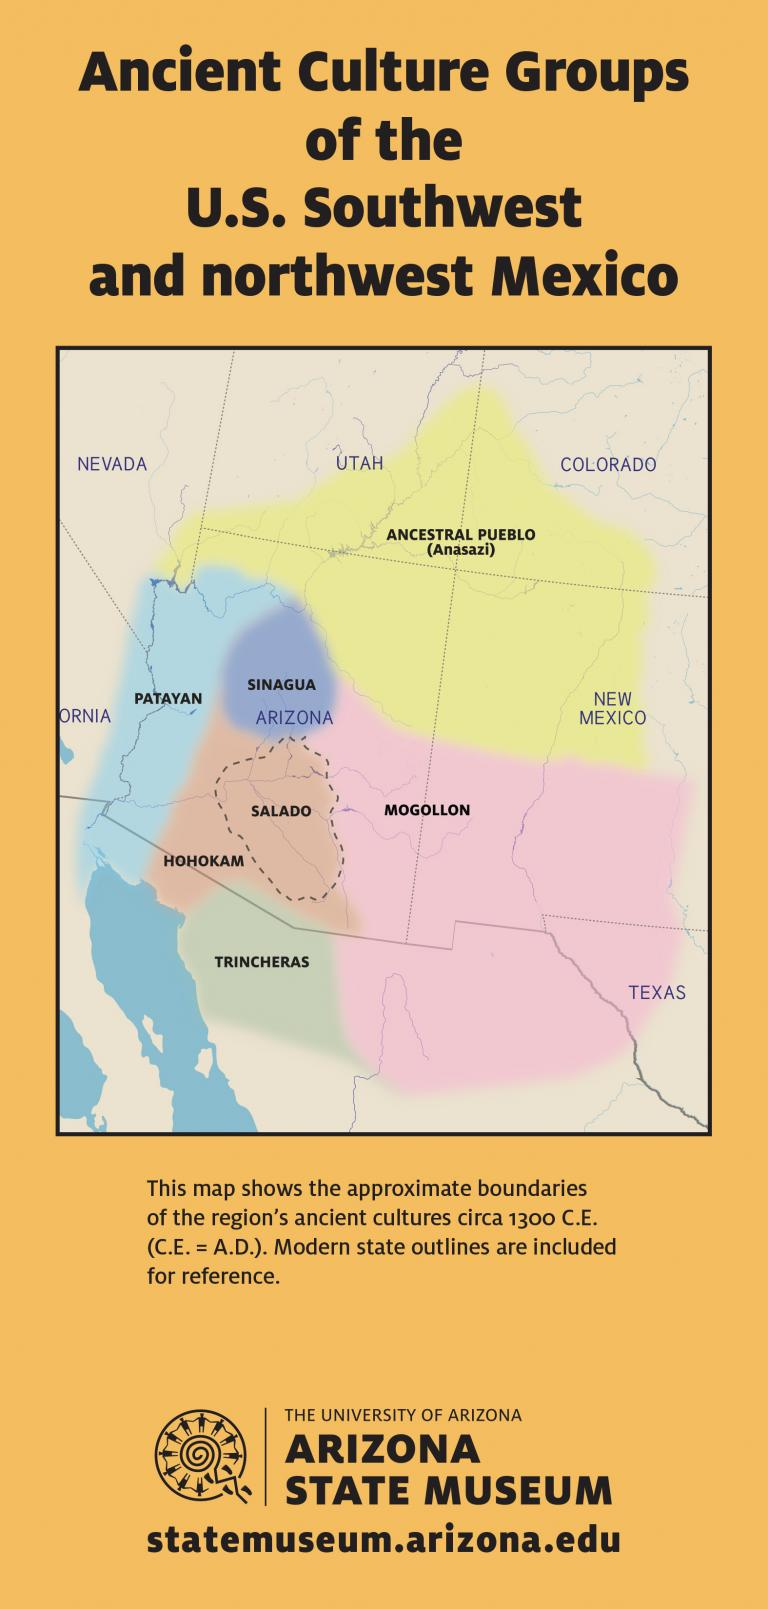 This map shows the approximate boundaries  of the region's ancient cultures circa 1300 C.E. (C.E. = A.D.).